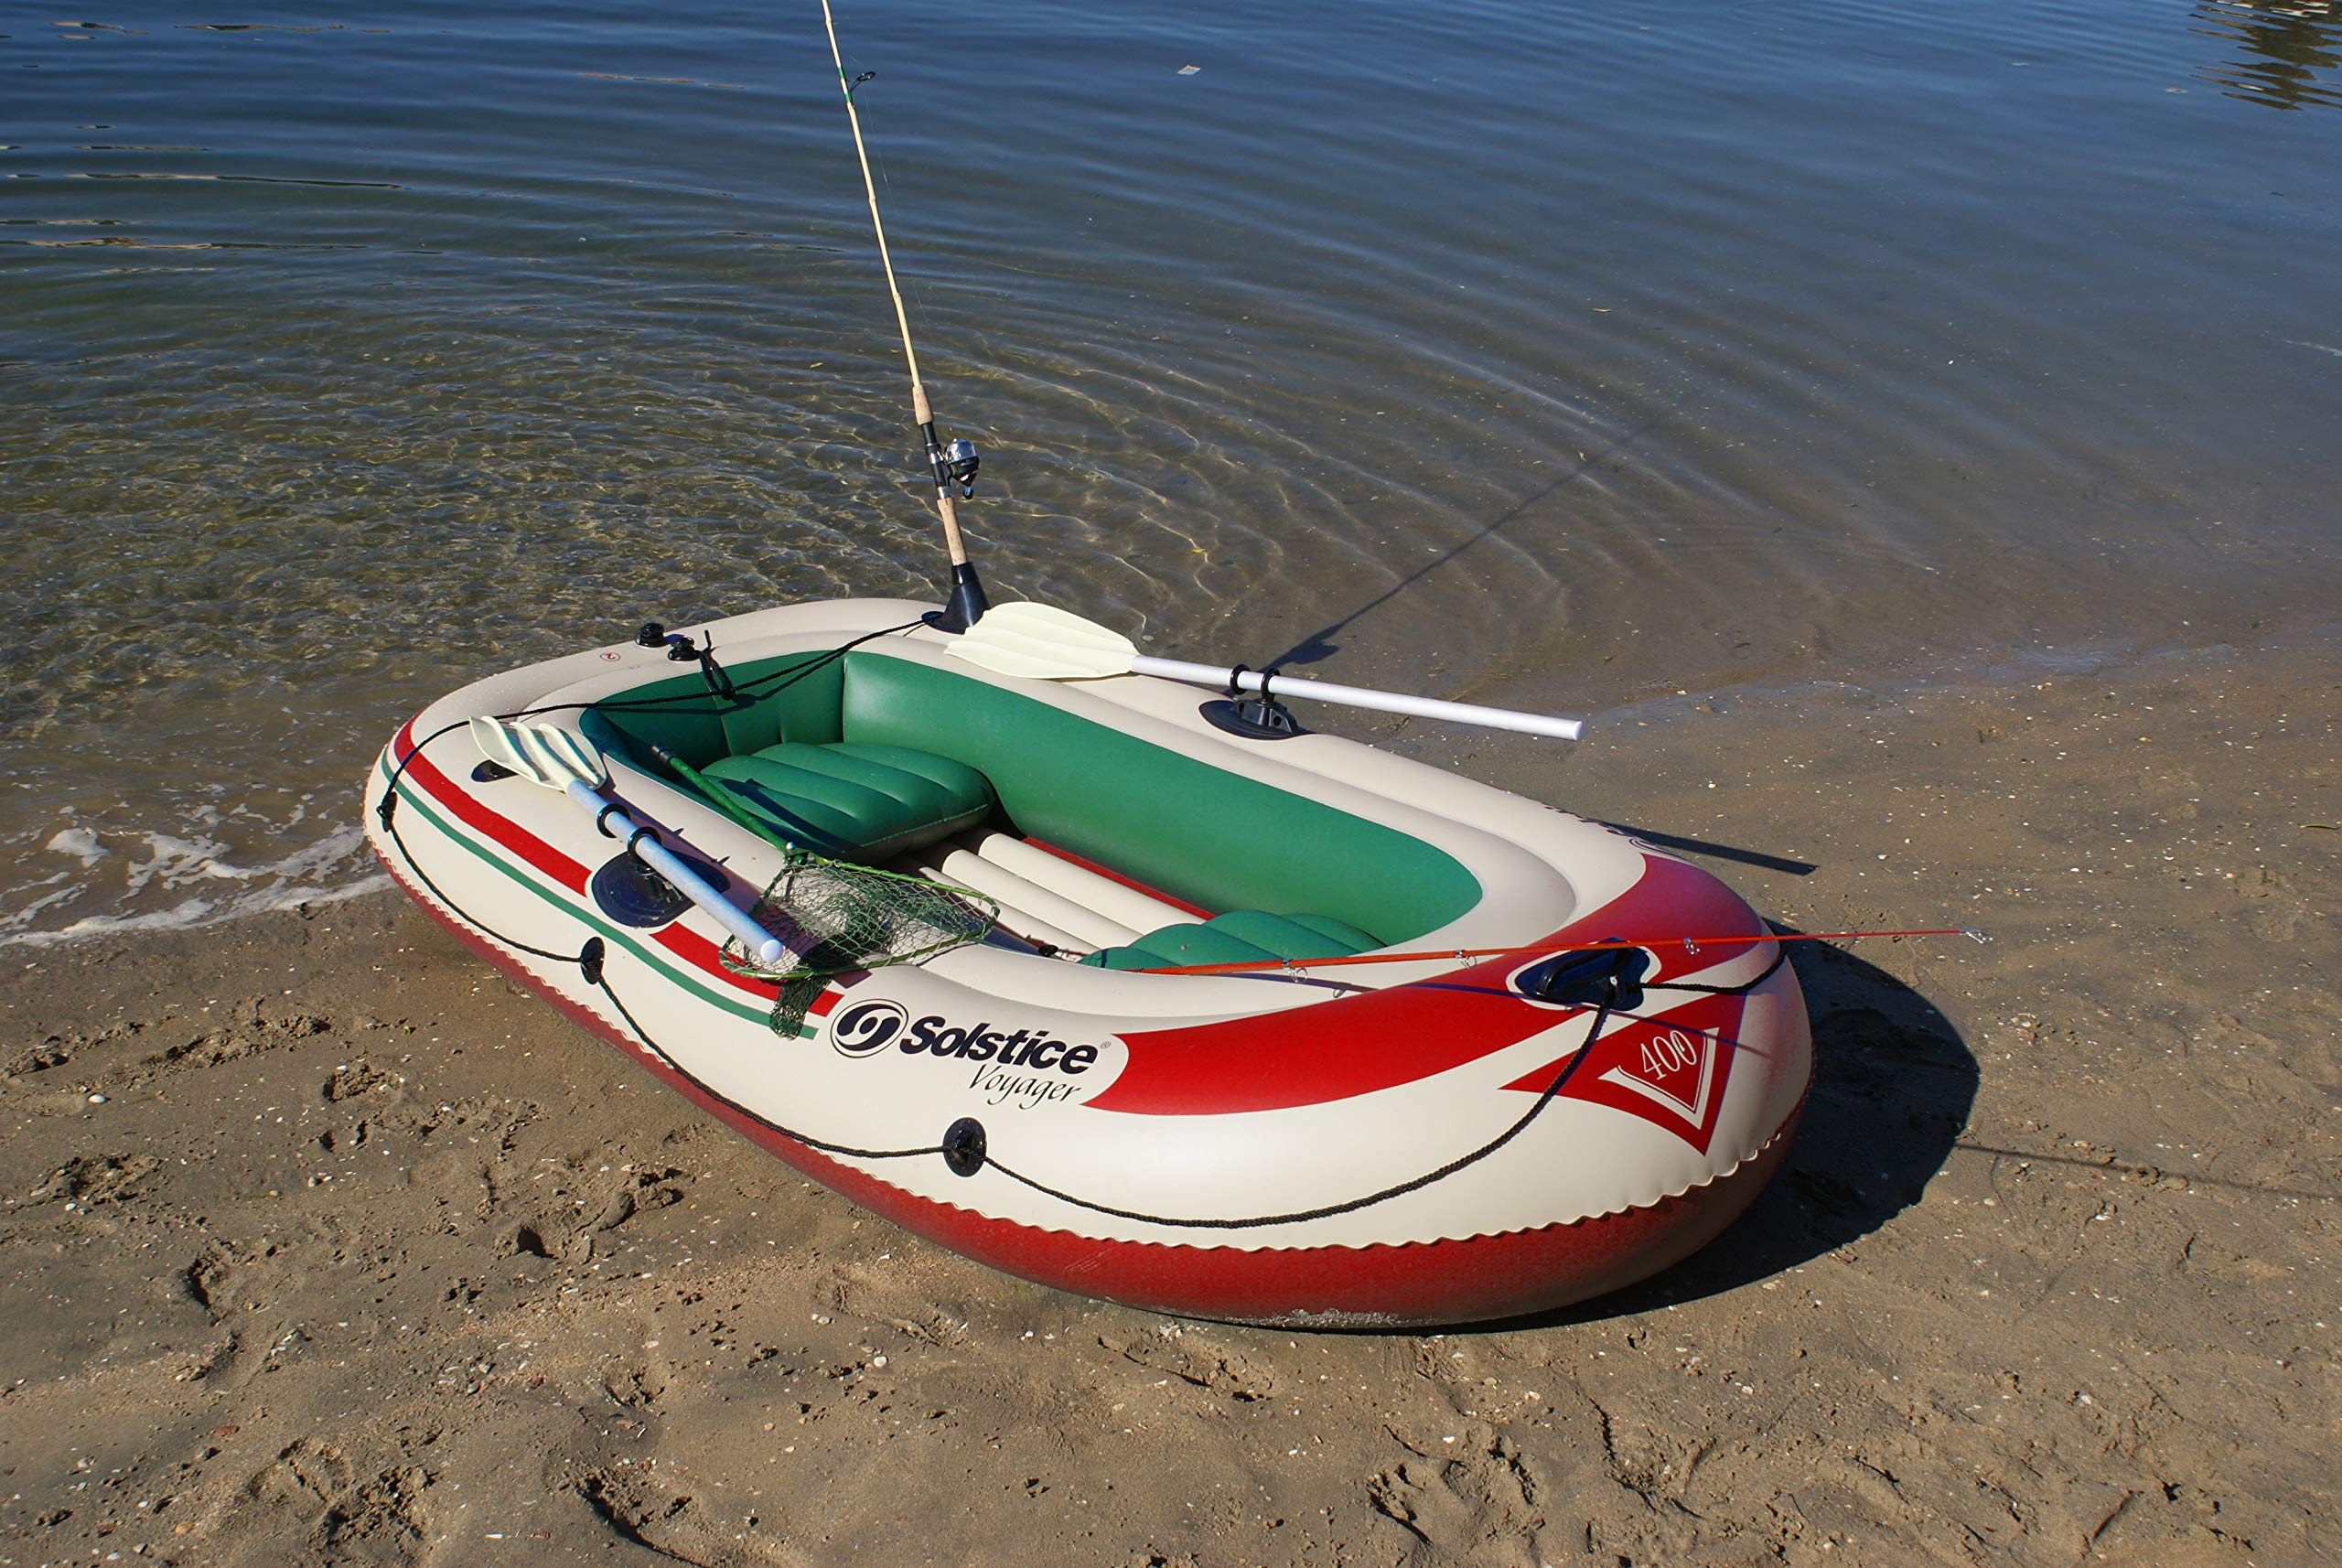 Solstice by Swimline Voyager 4-Person Boat by Solstice